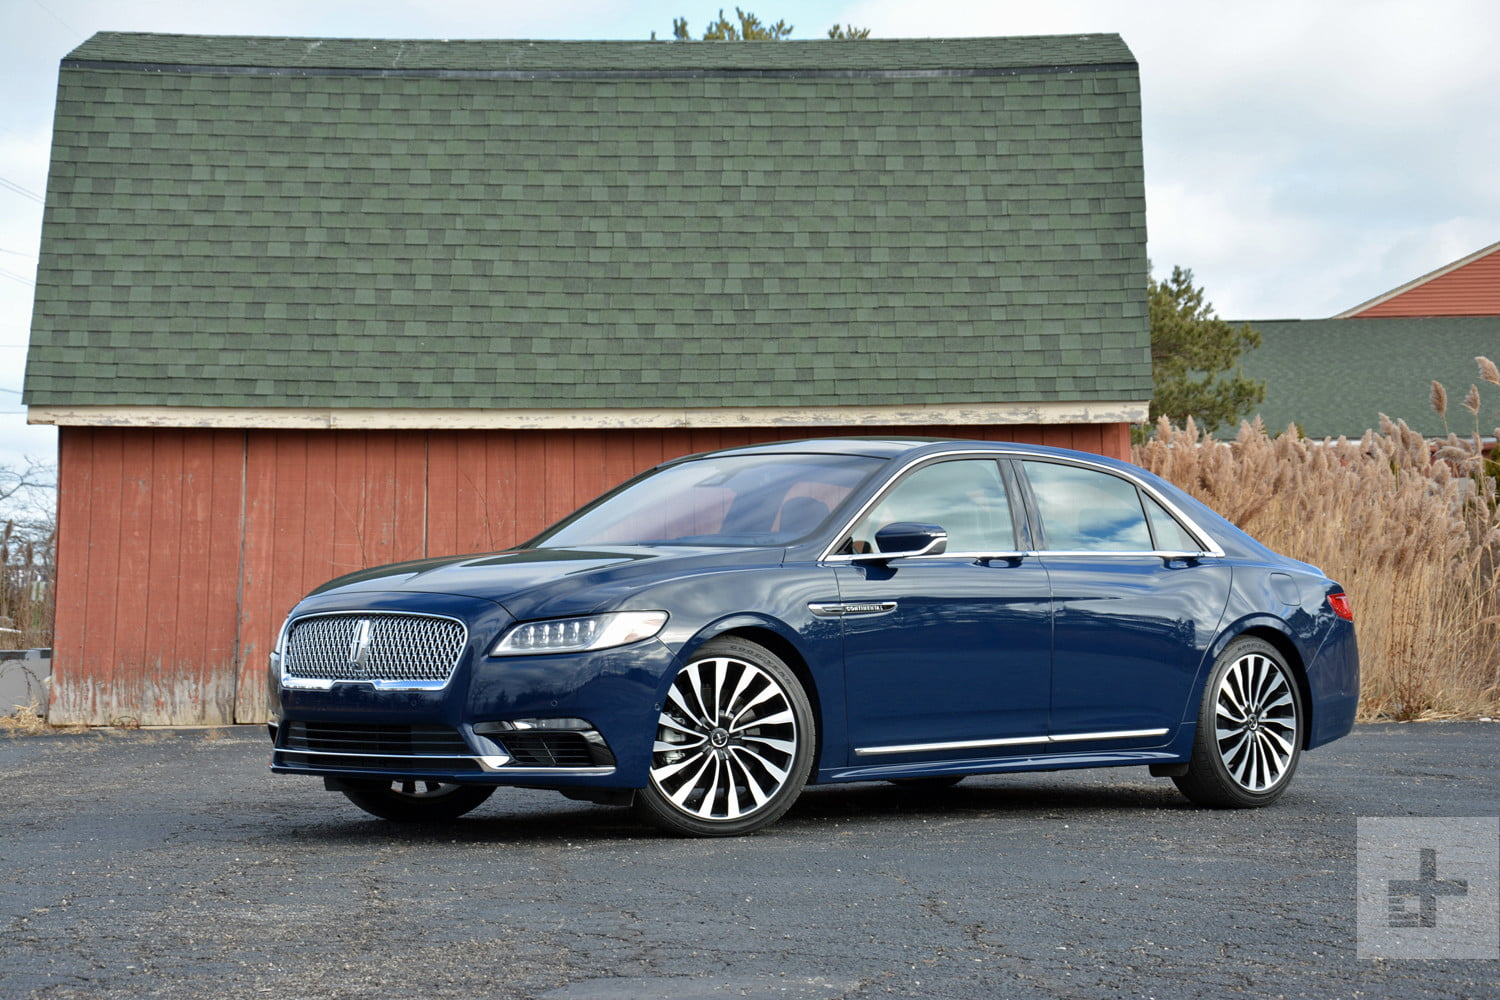 With the roomy and speedy 2019 Continental, you can take Lincoln seriously again